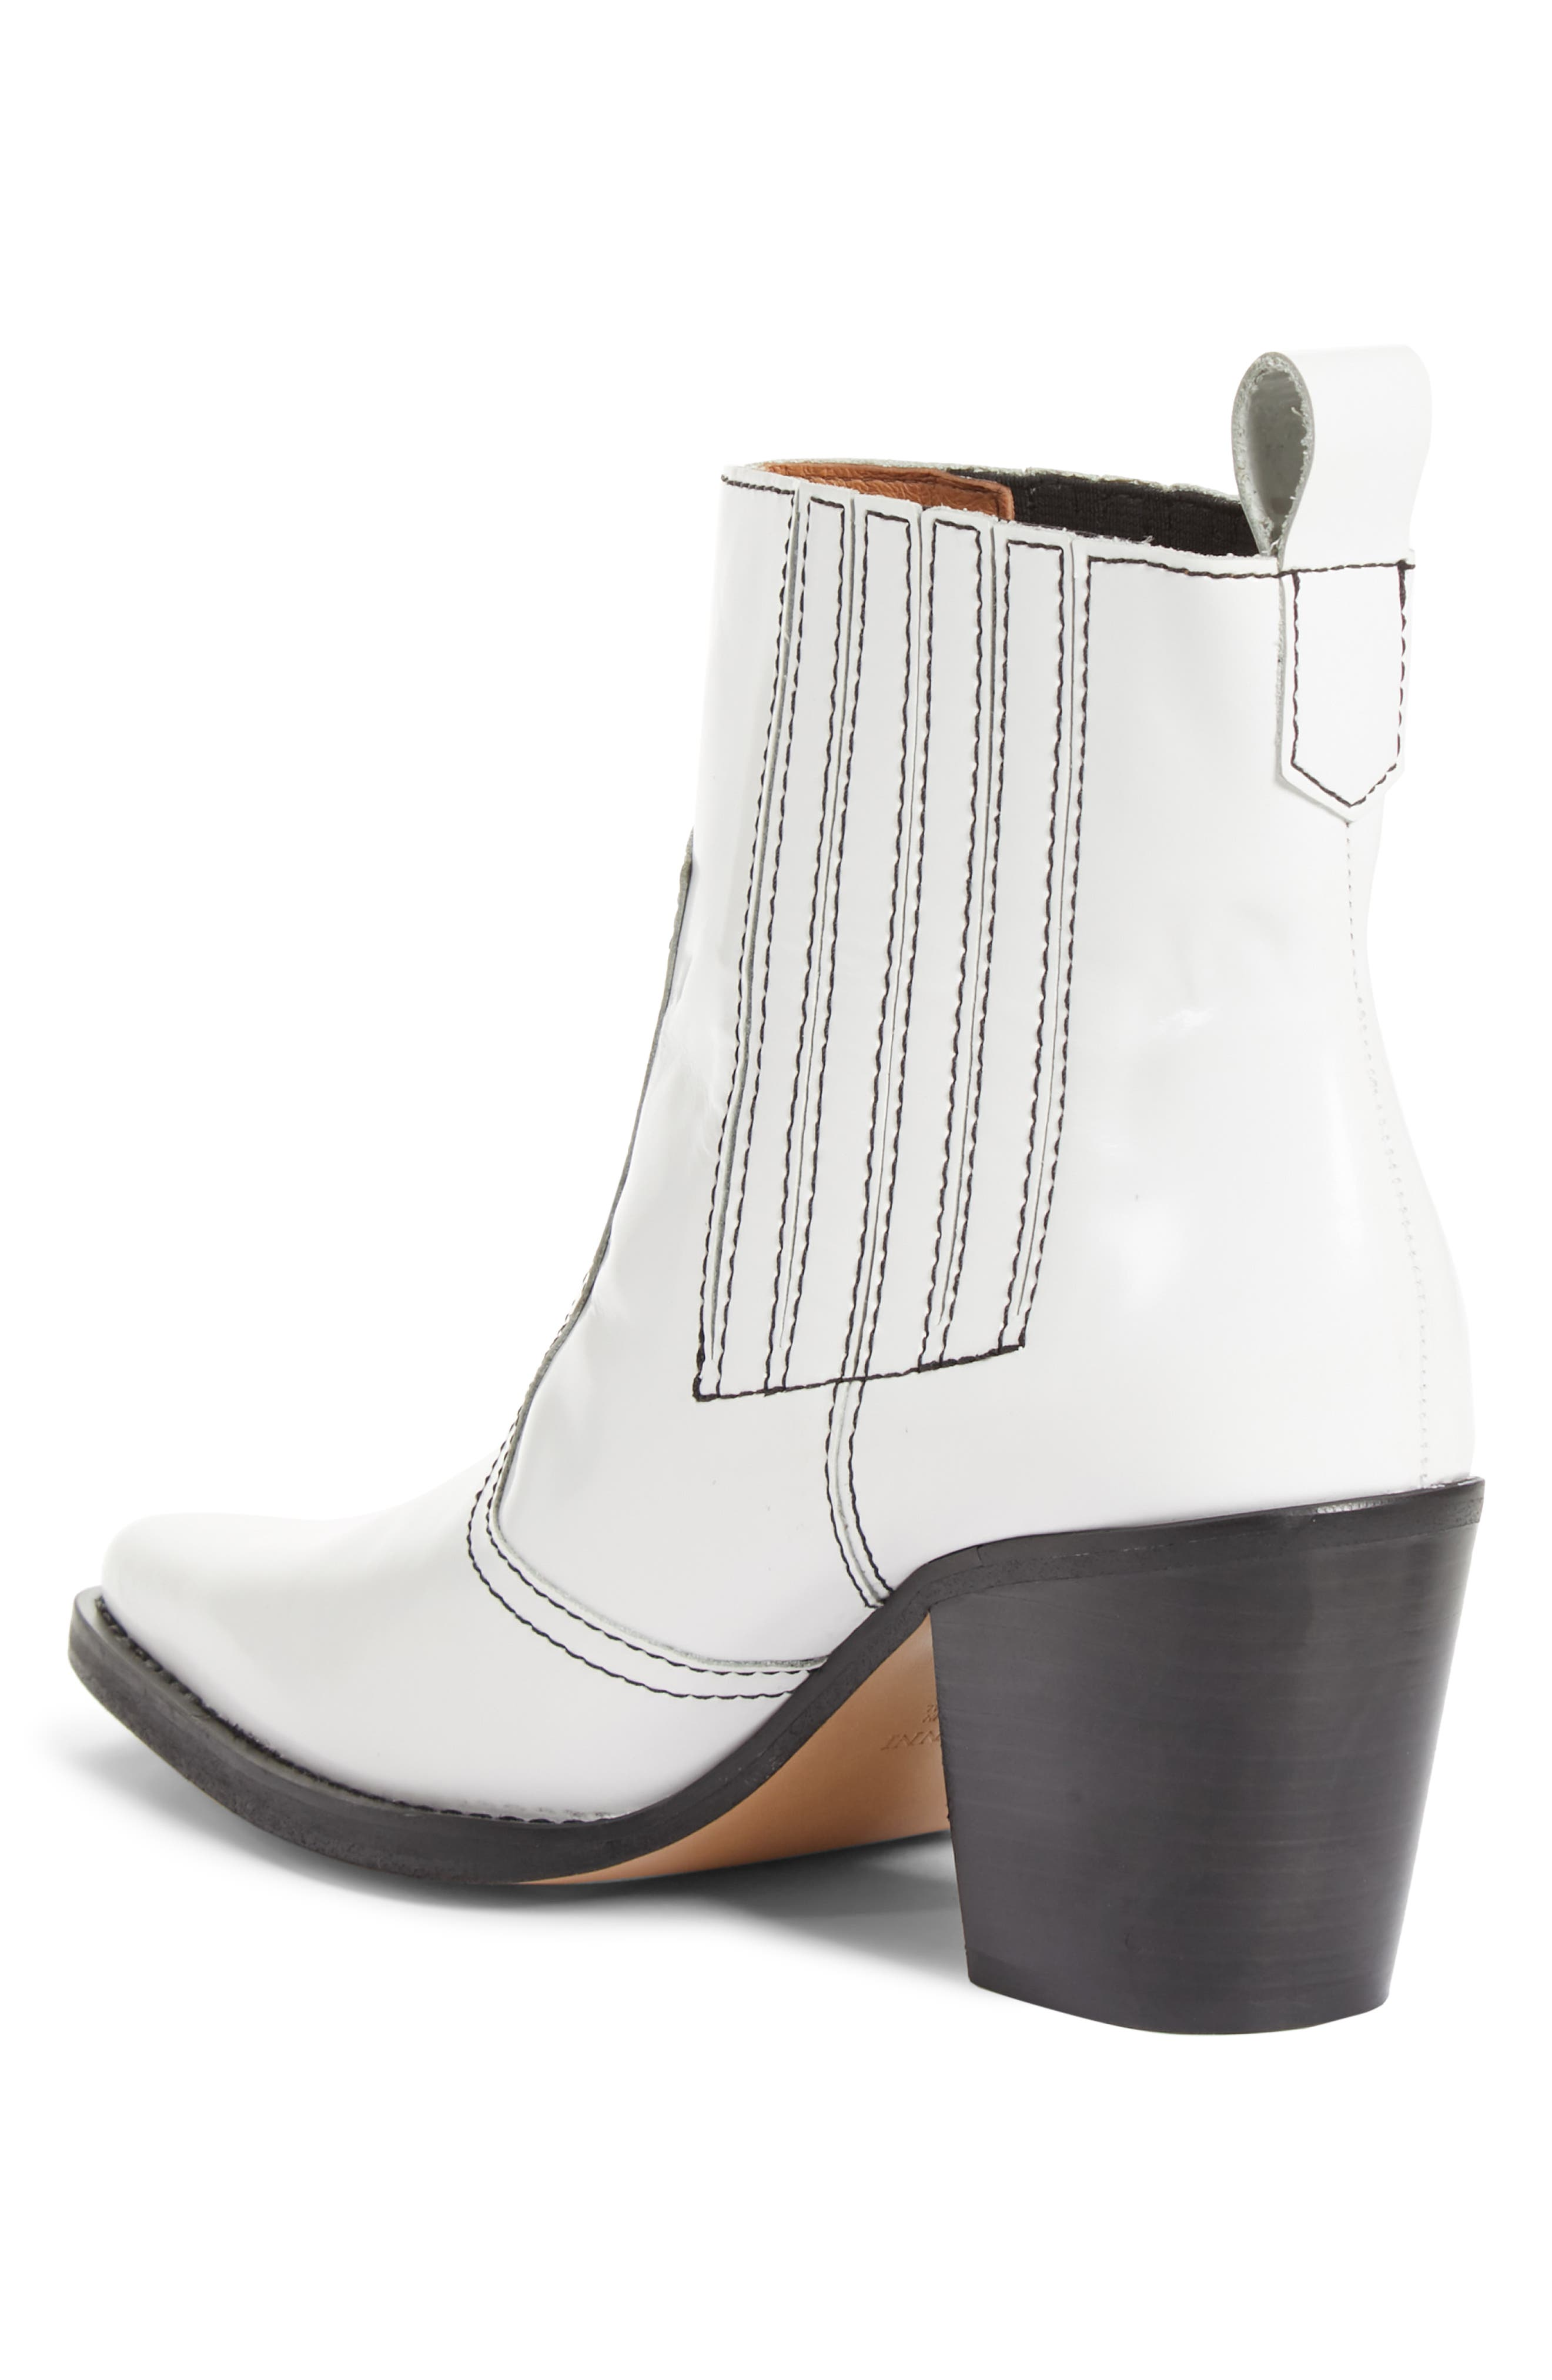 Western Bootie,                             Alternate thumbnail 2, color,                             BRIGHT WHITE 151